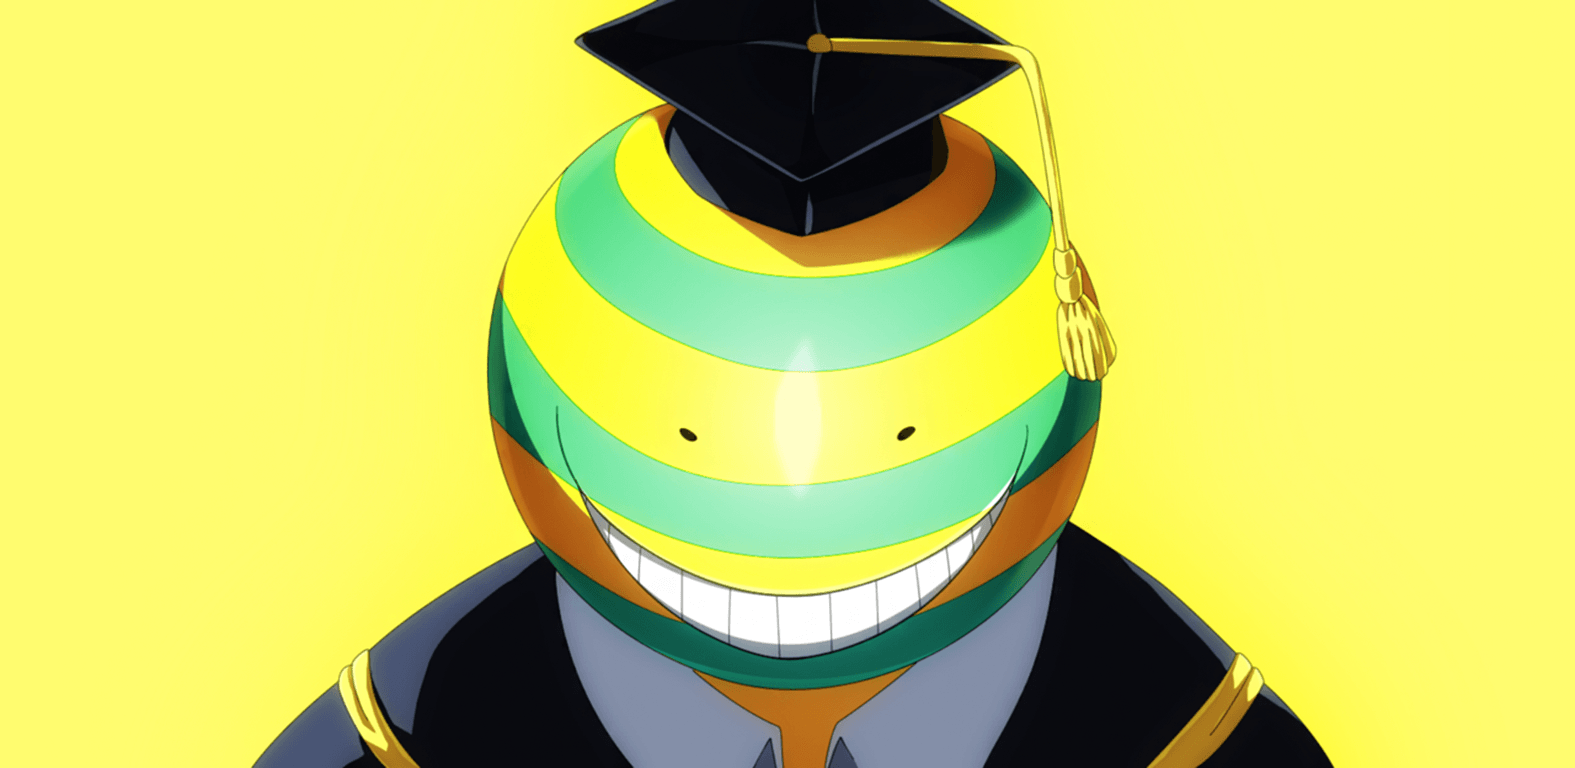 assassination classroom wallpaper 1